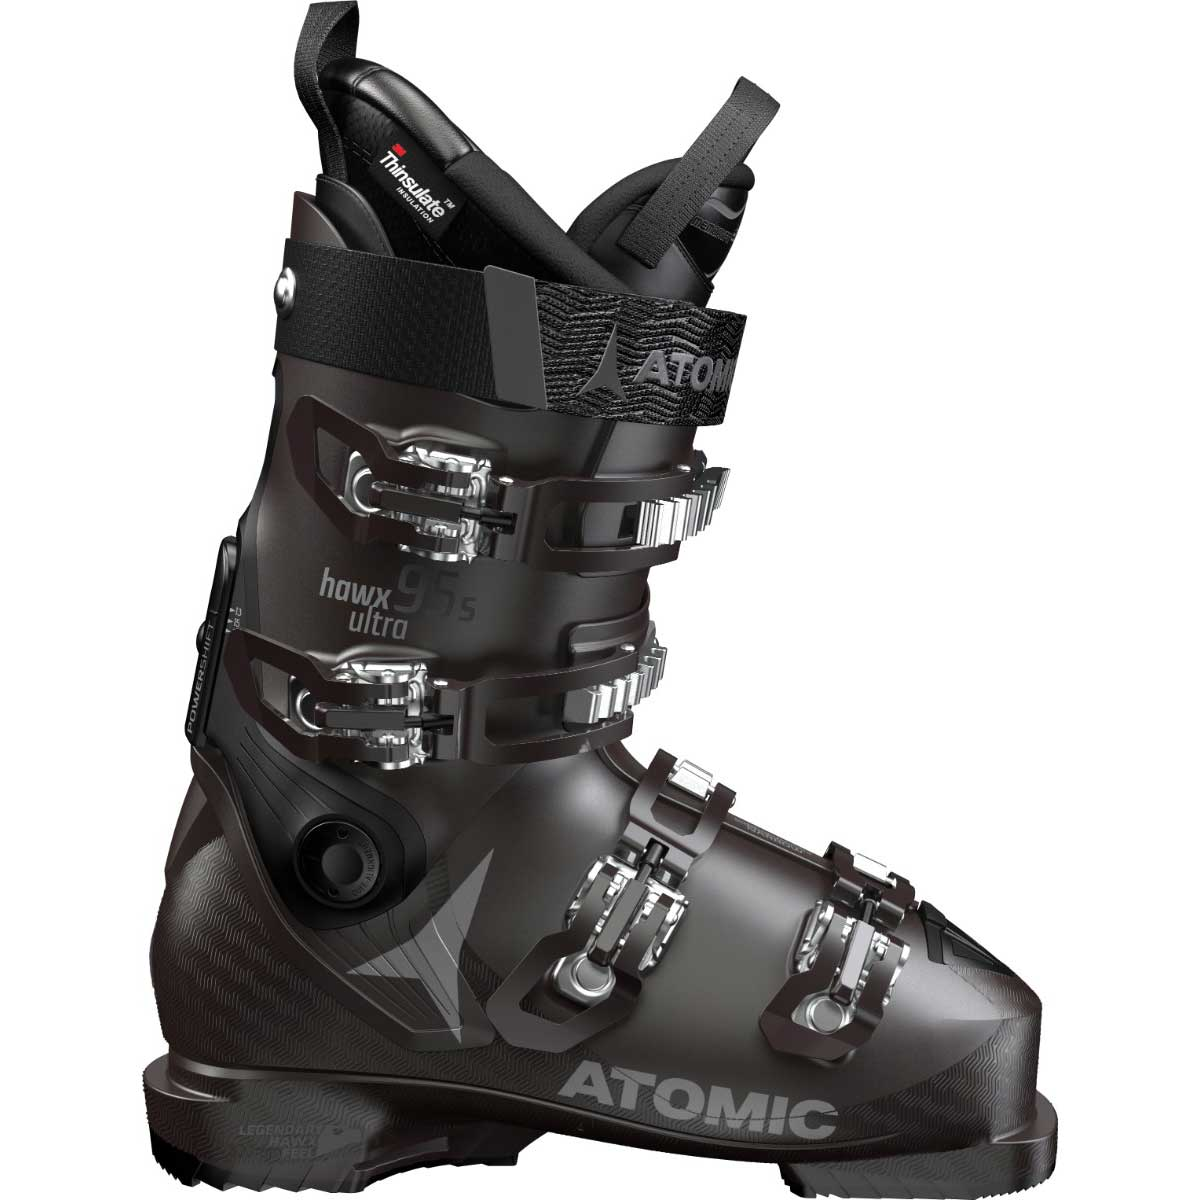 Atomic women's HAWX Ultra 95 S ski boot in black and purple